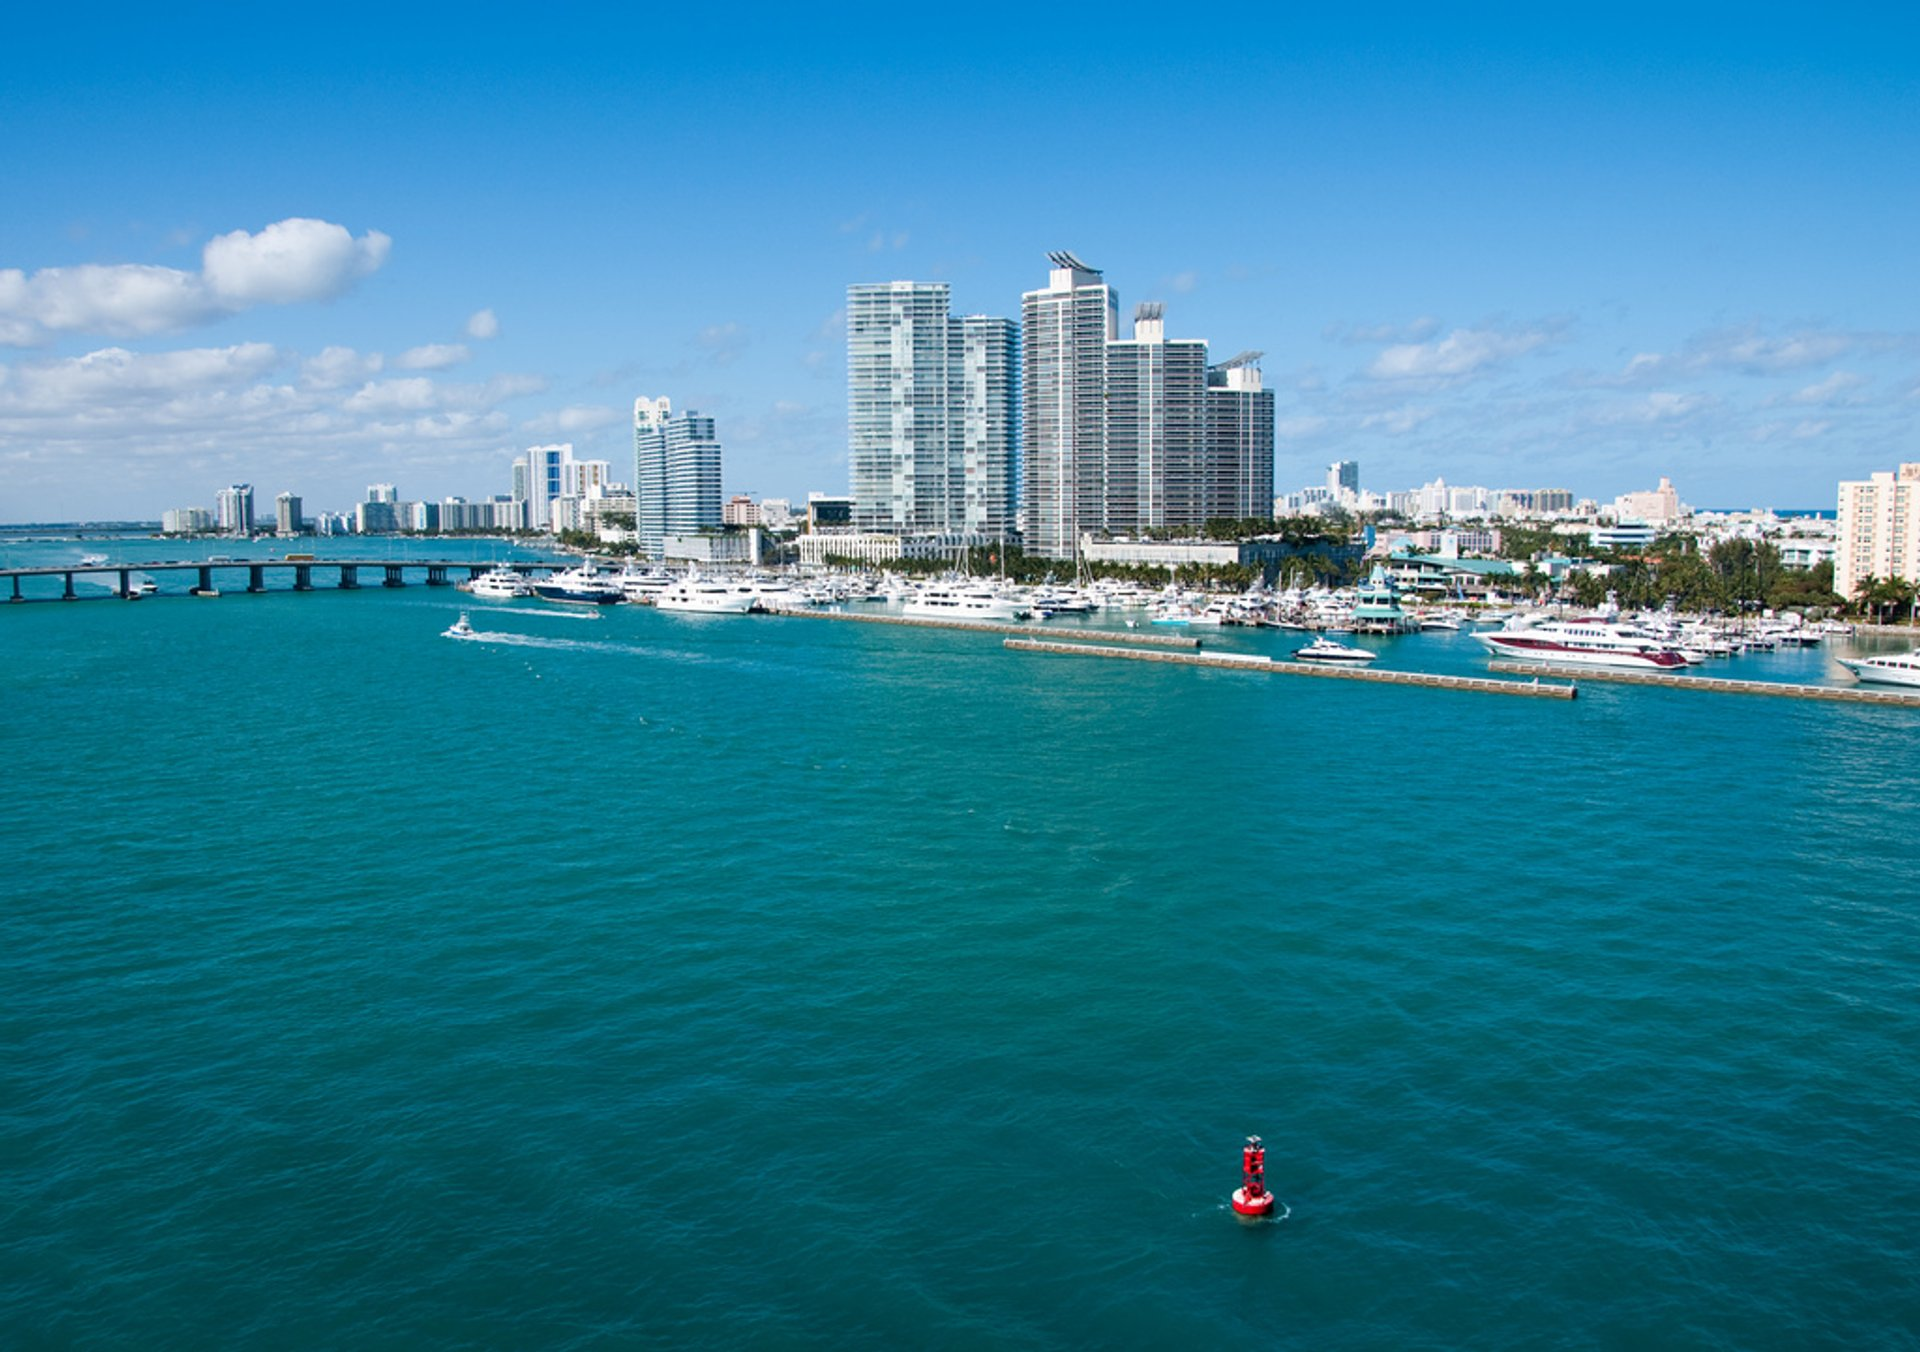 Miami Cruise Month in Miami 2019 - Best Time